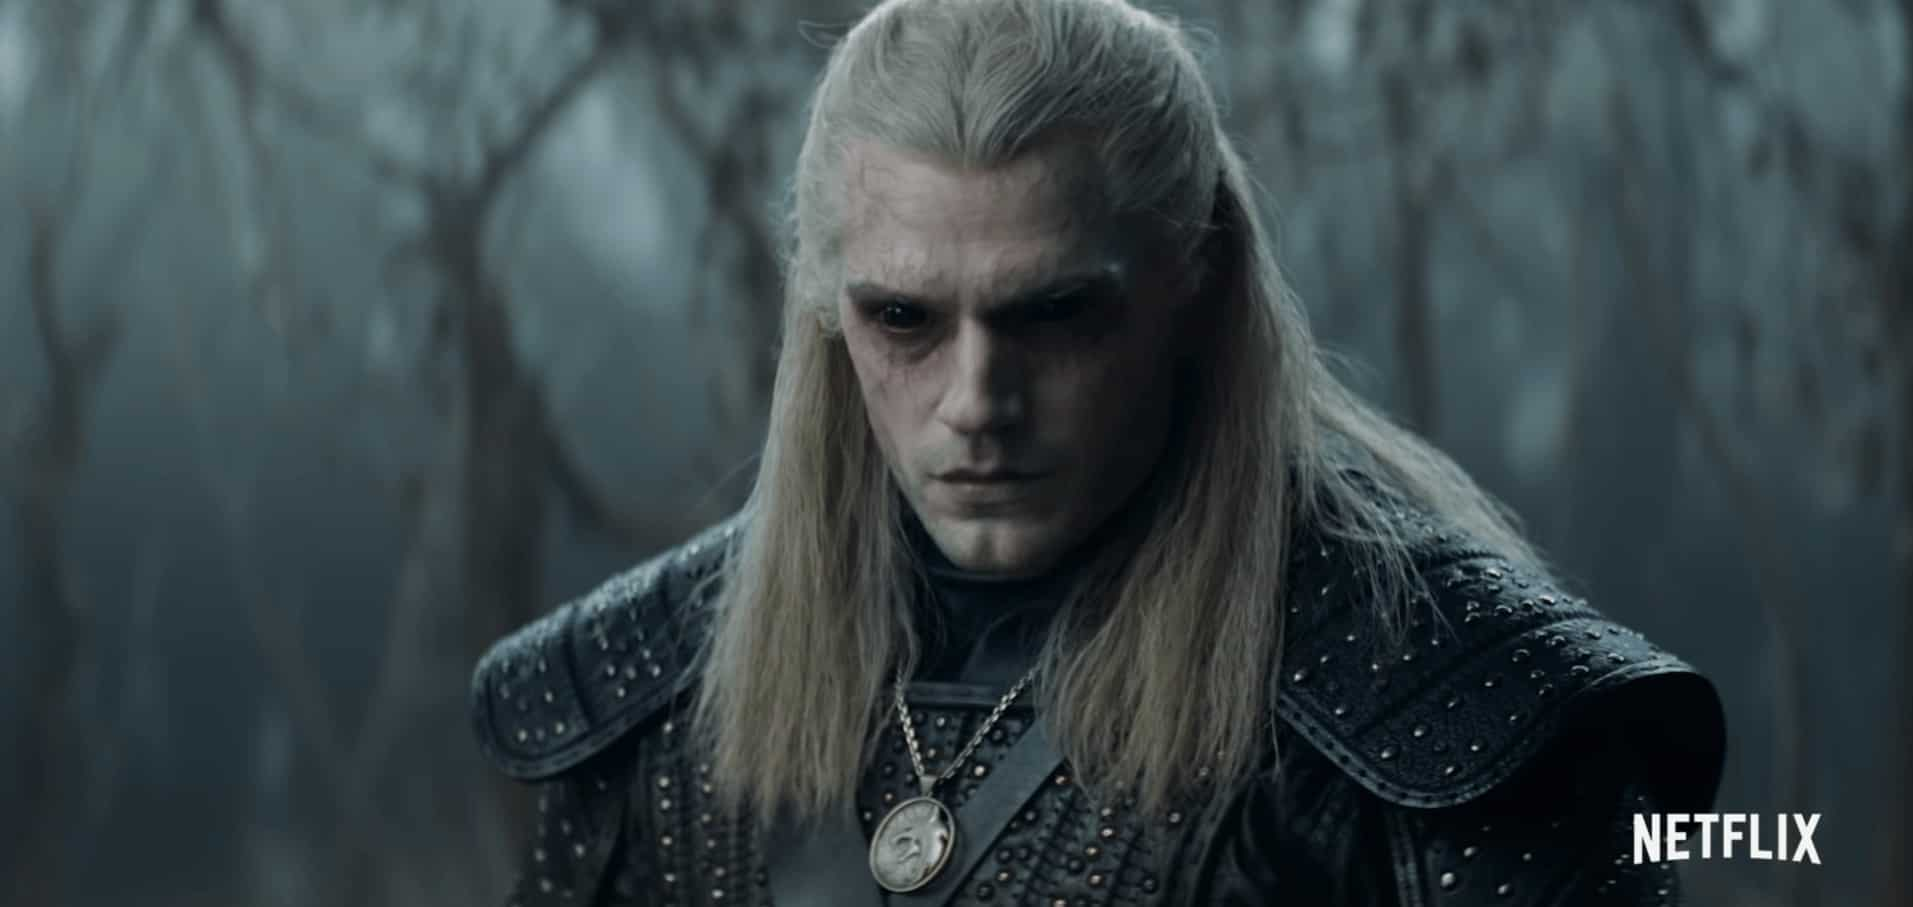 Netflix's The Witcher Trailer